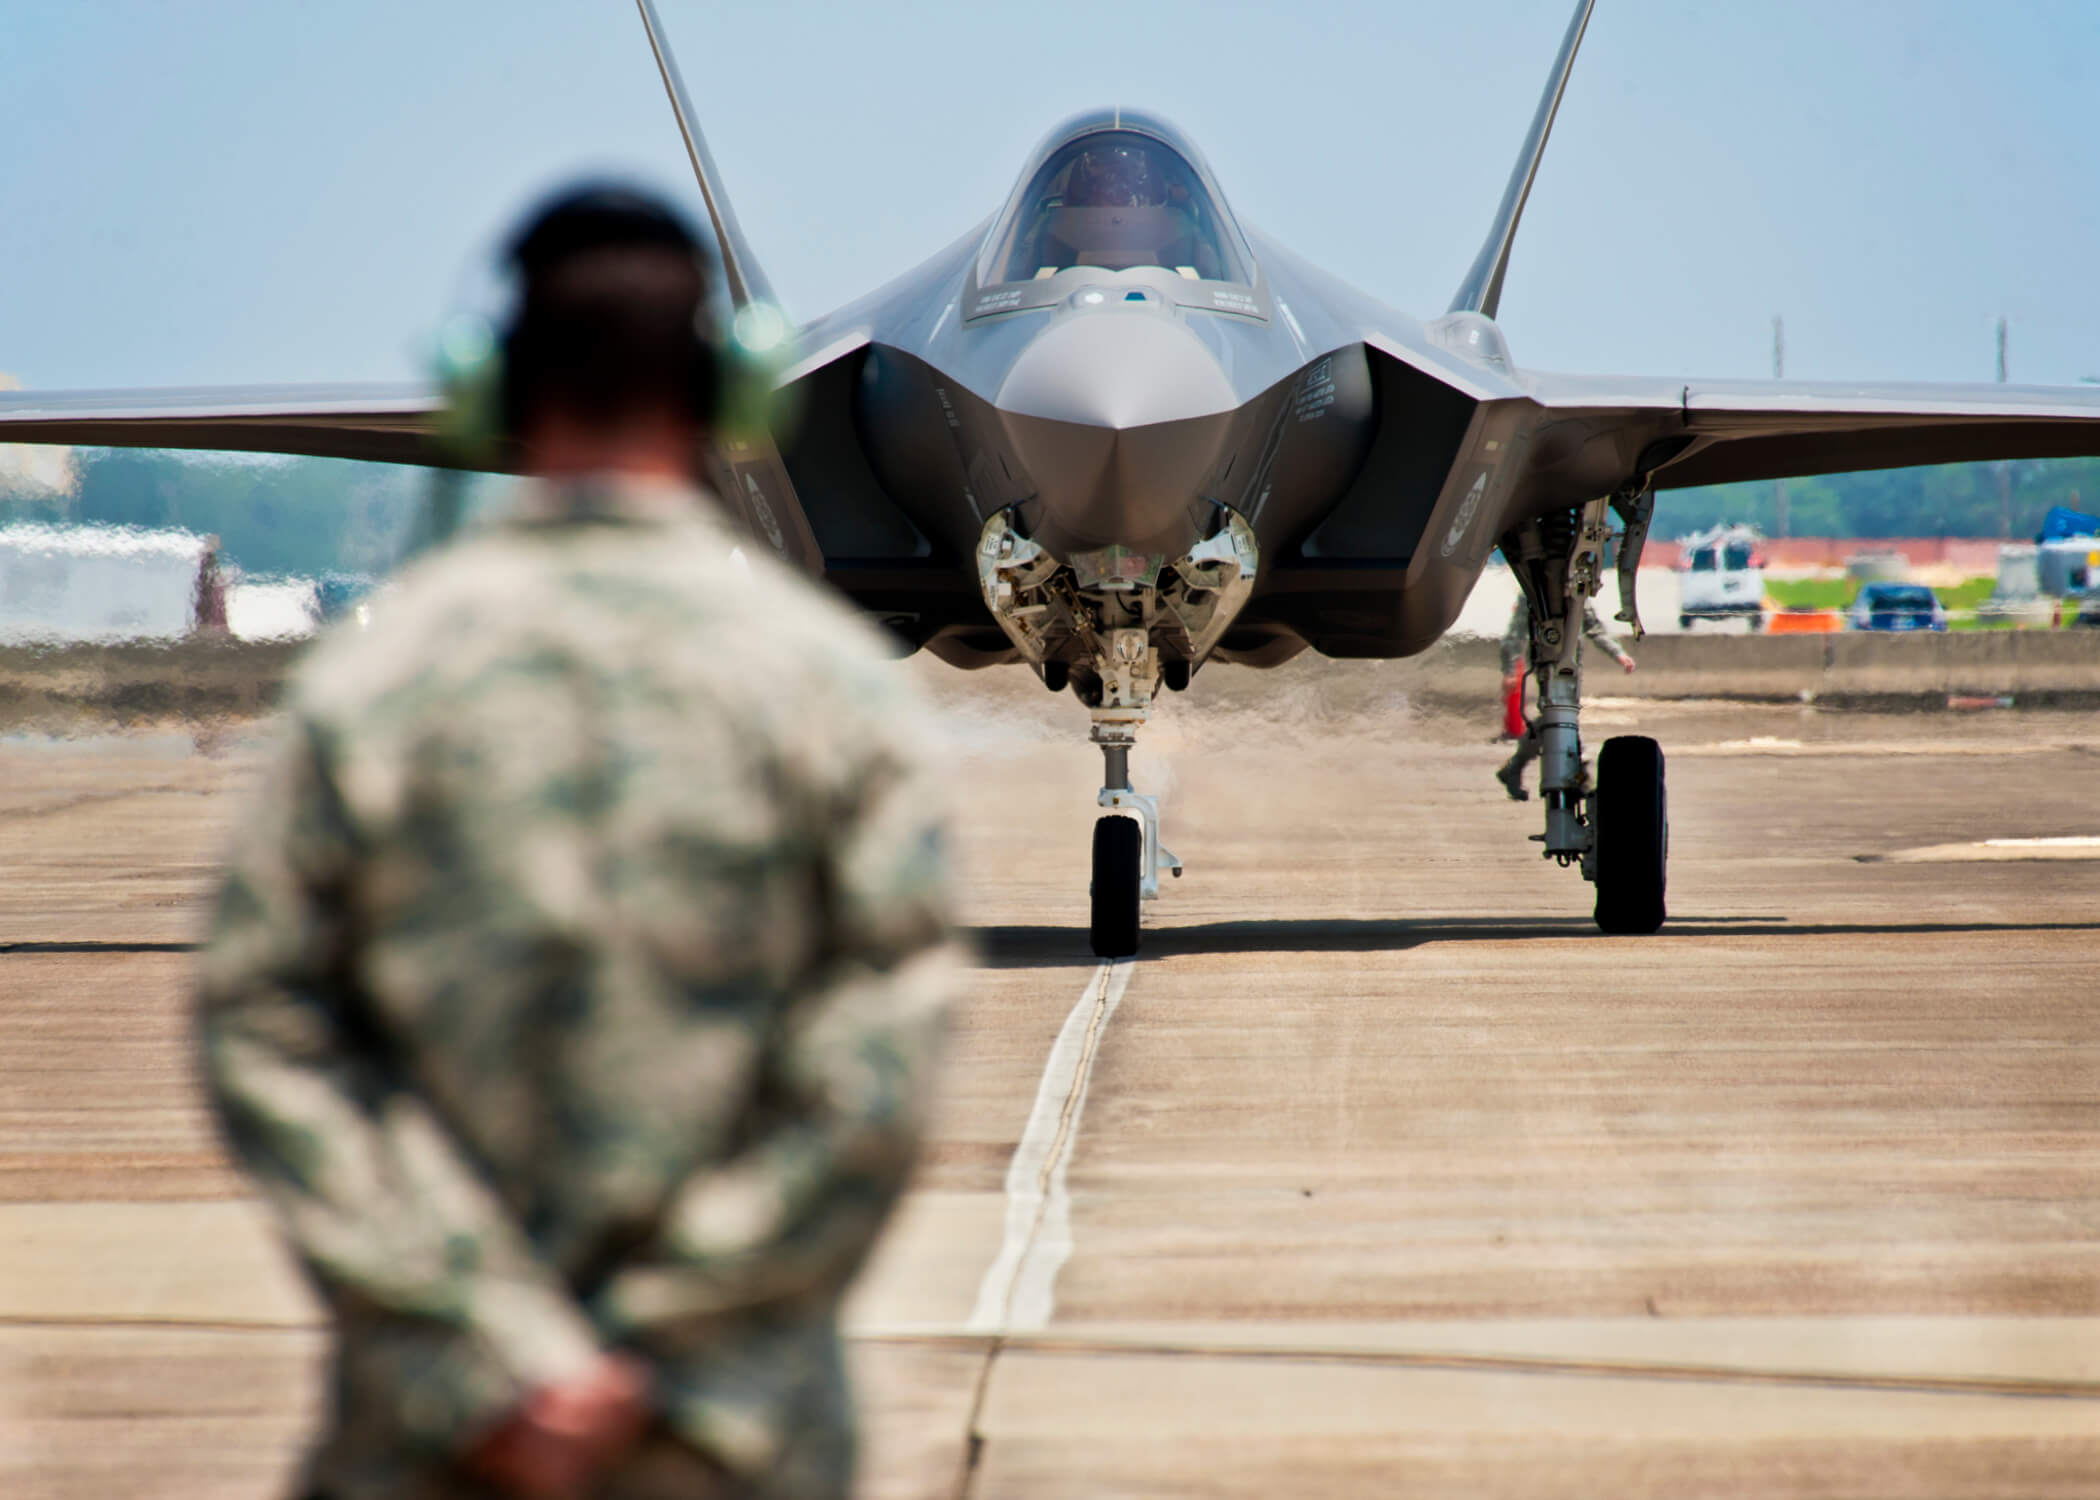 F-35 fighter jet landing. © Samuel King Jr/Flickr